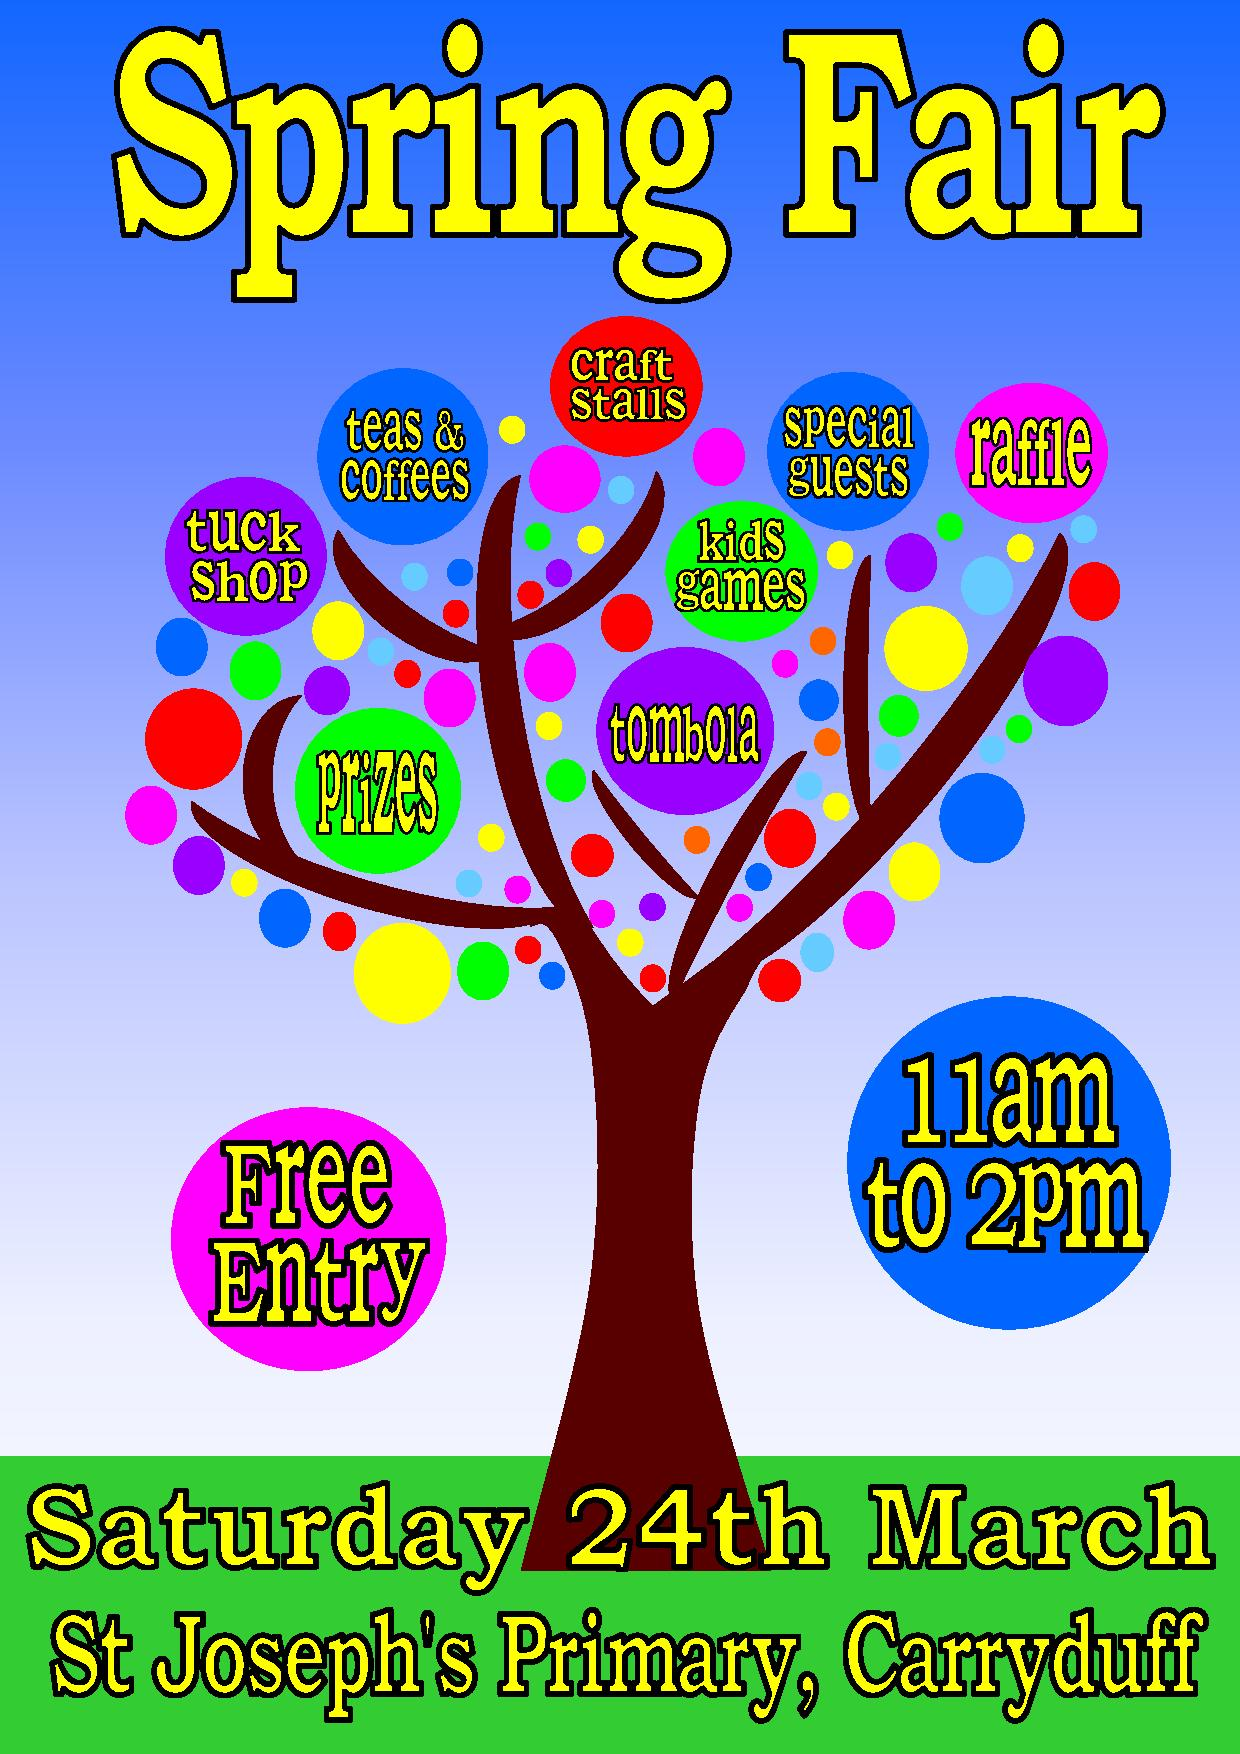 St Josephs Spring Fair 24th March !!